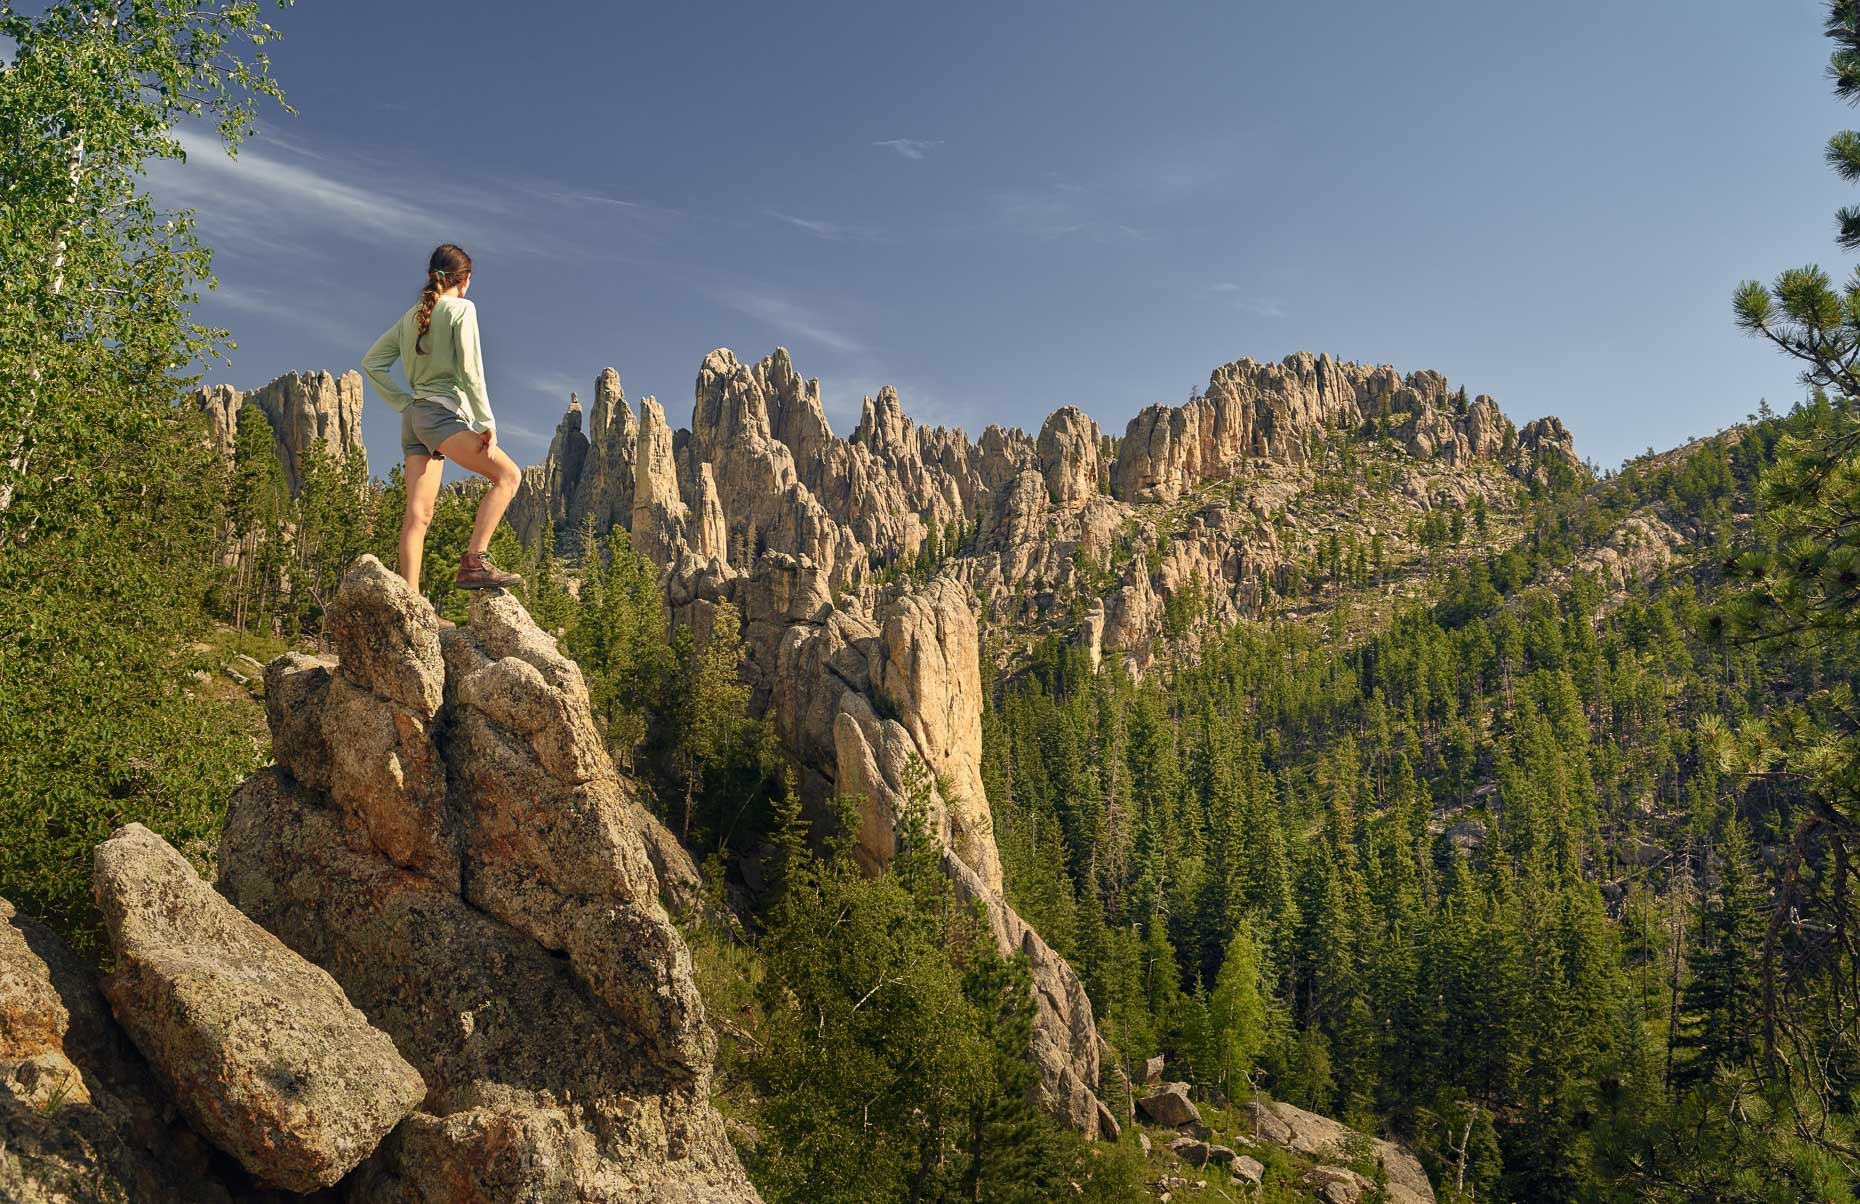 Kevin Steele - A woman hiking the South Dakota Black Hills